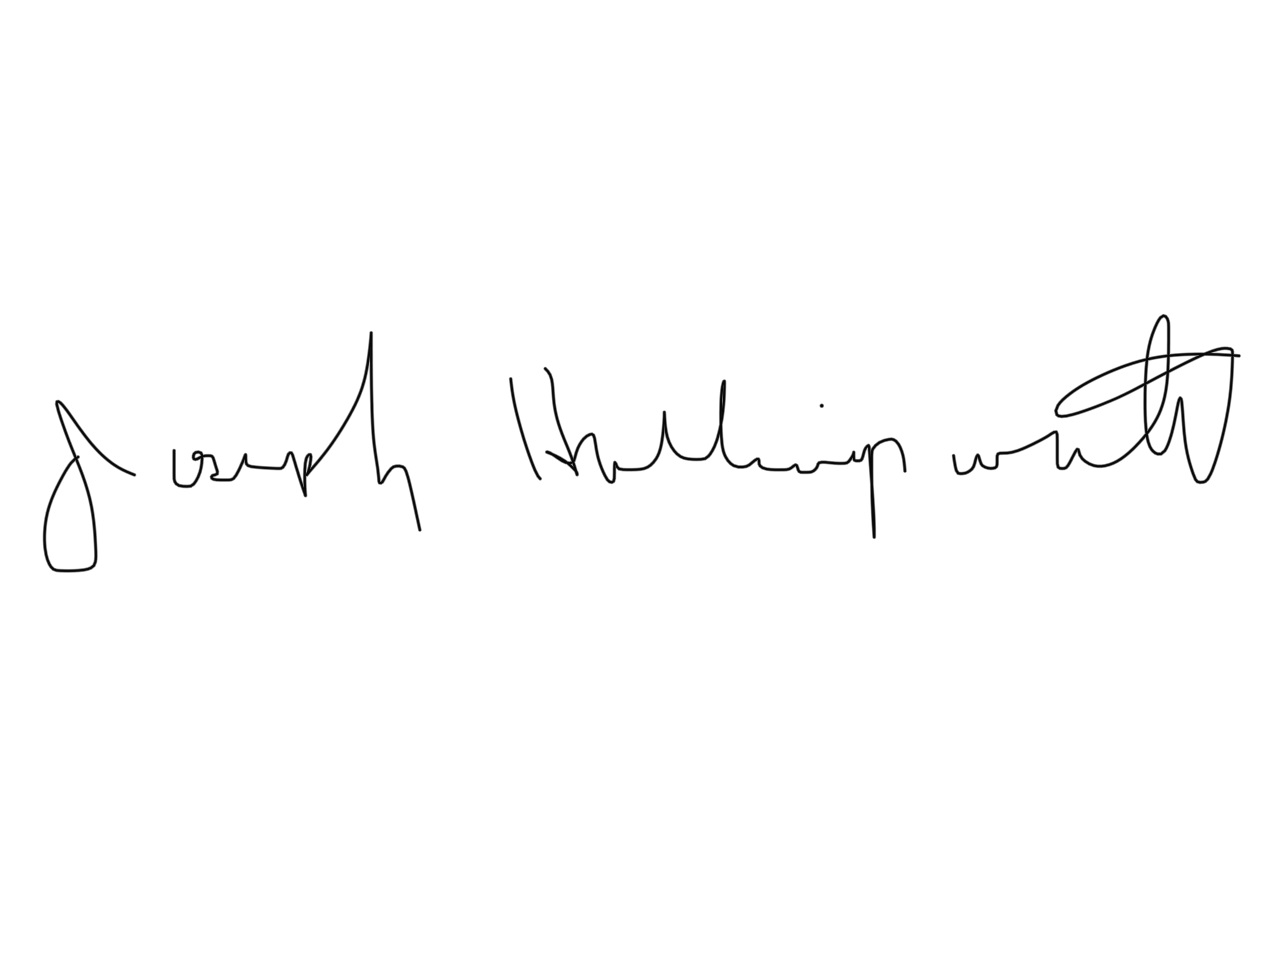 Joseph Hollingsworth's Signature